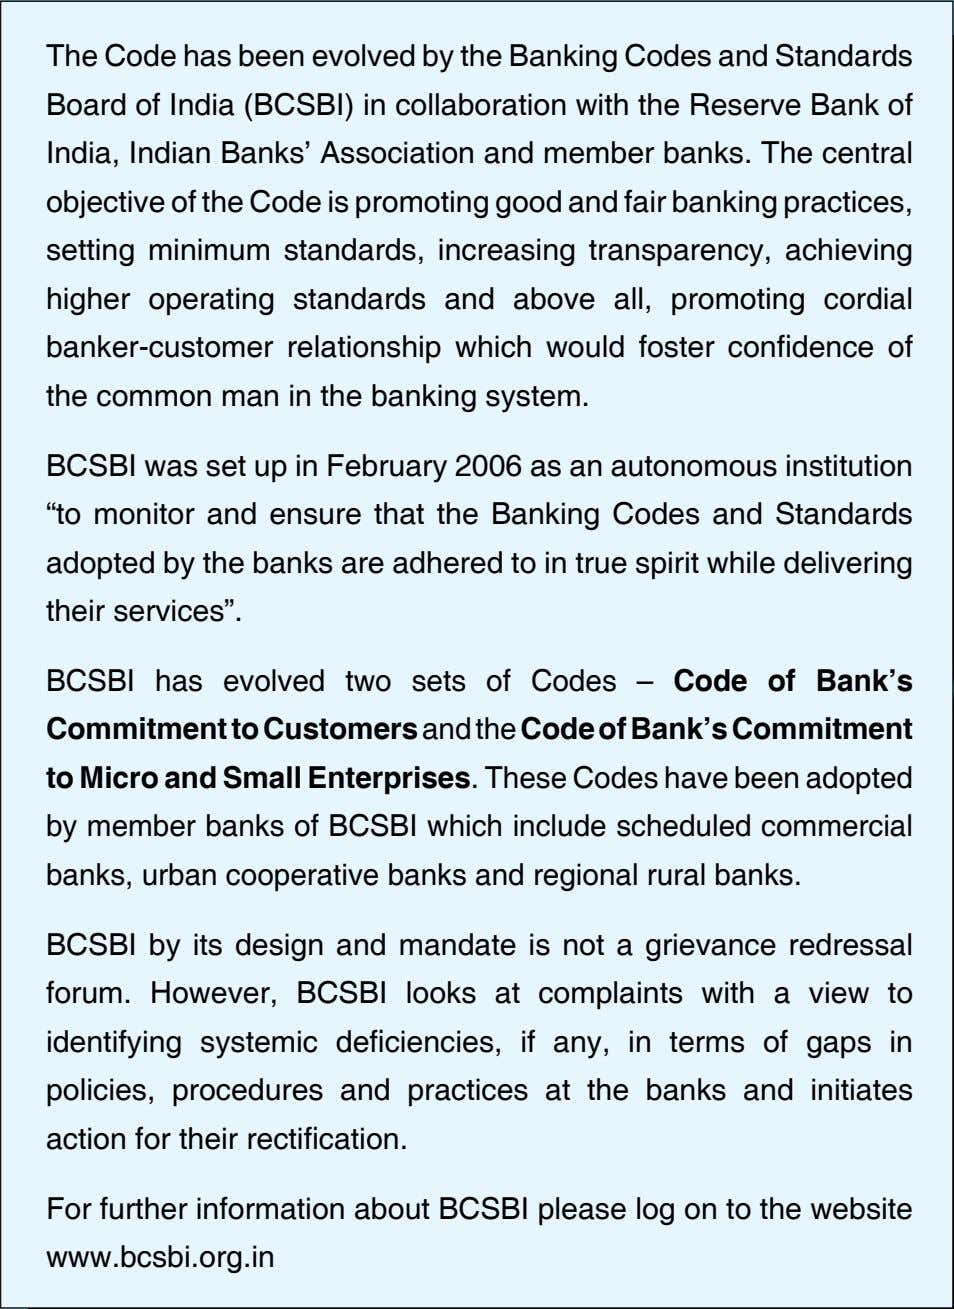 The Code has been evolved by the Banking Codes and Standards Board of India (BCSBI)